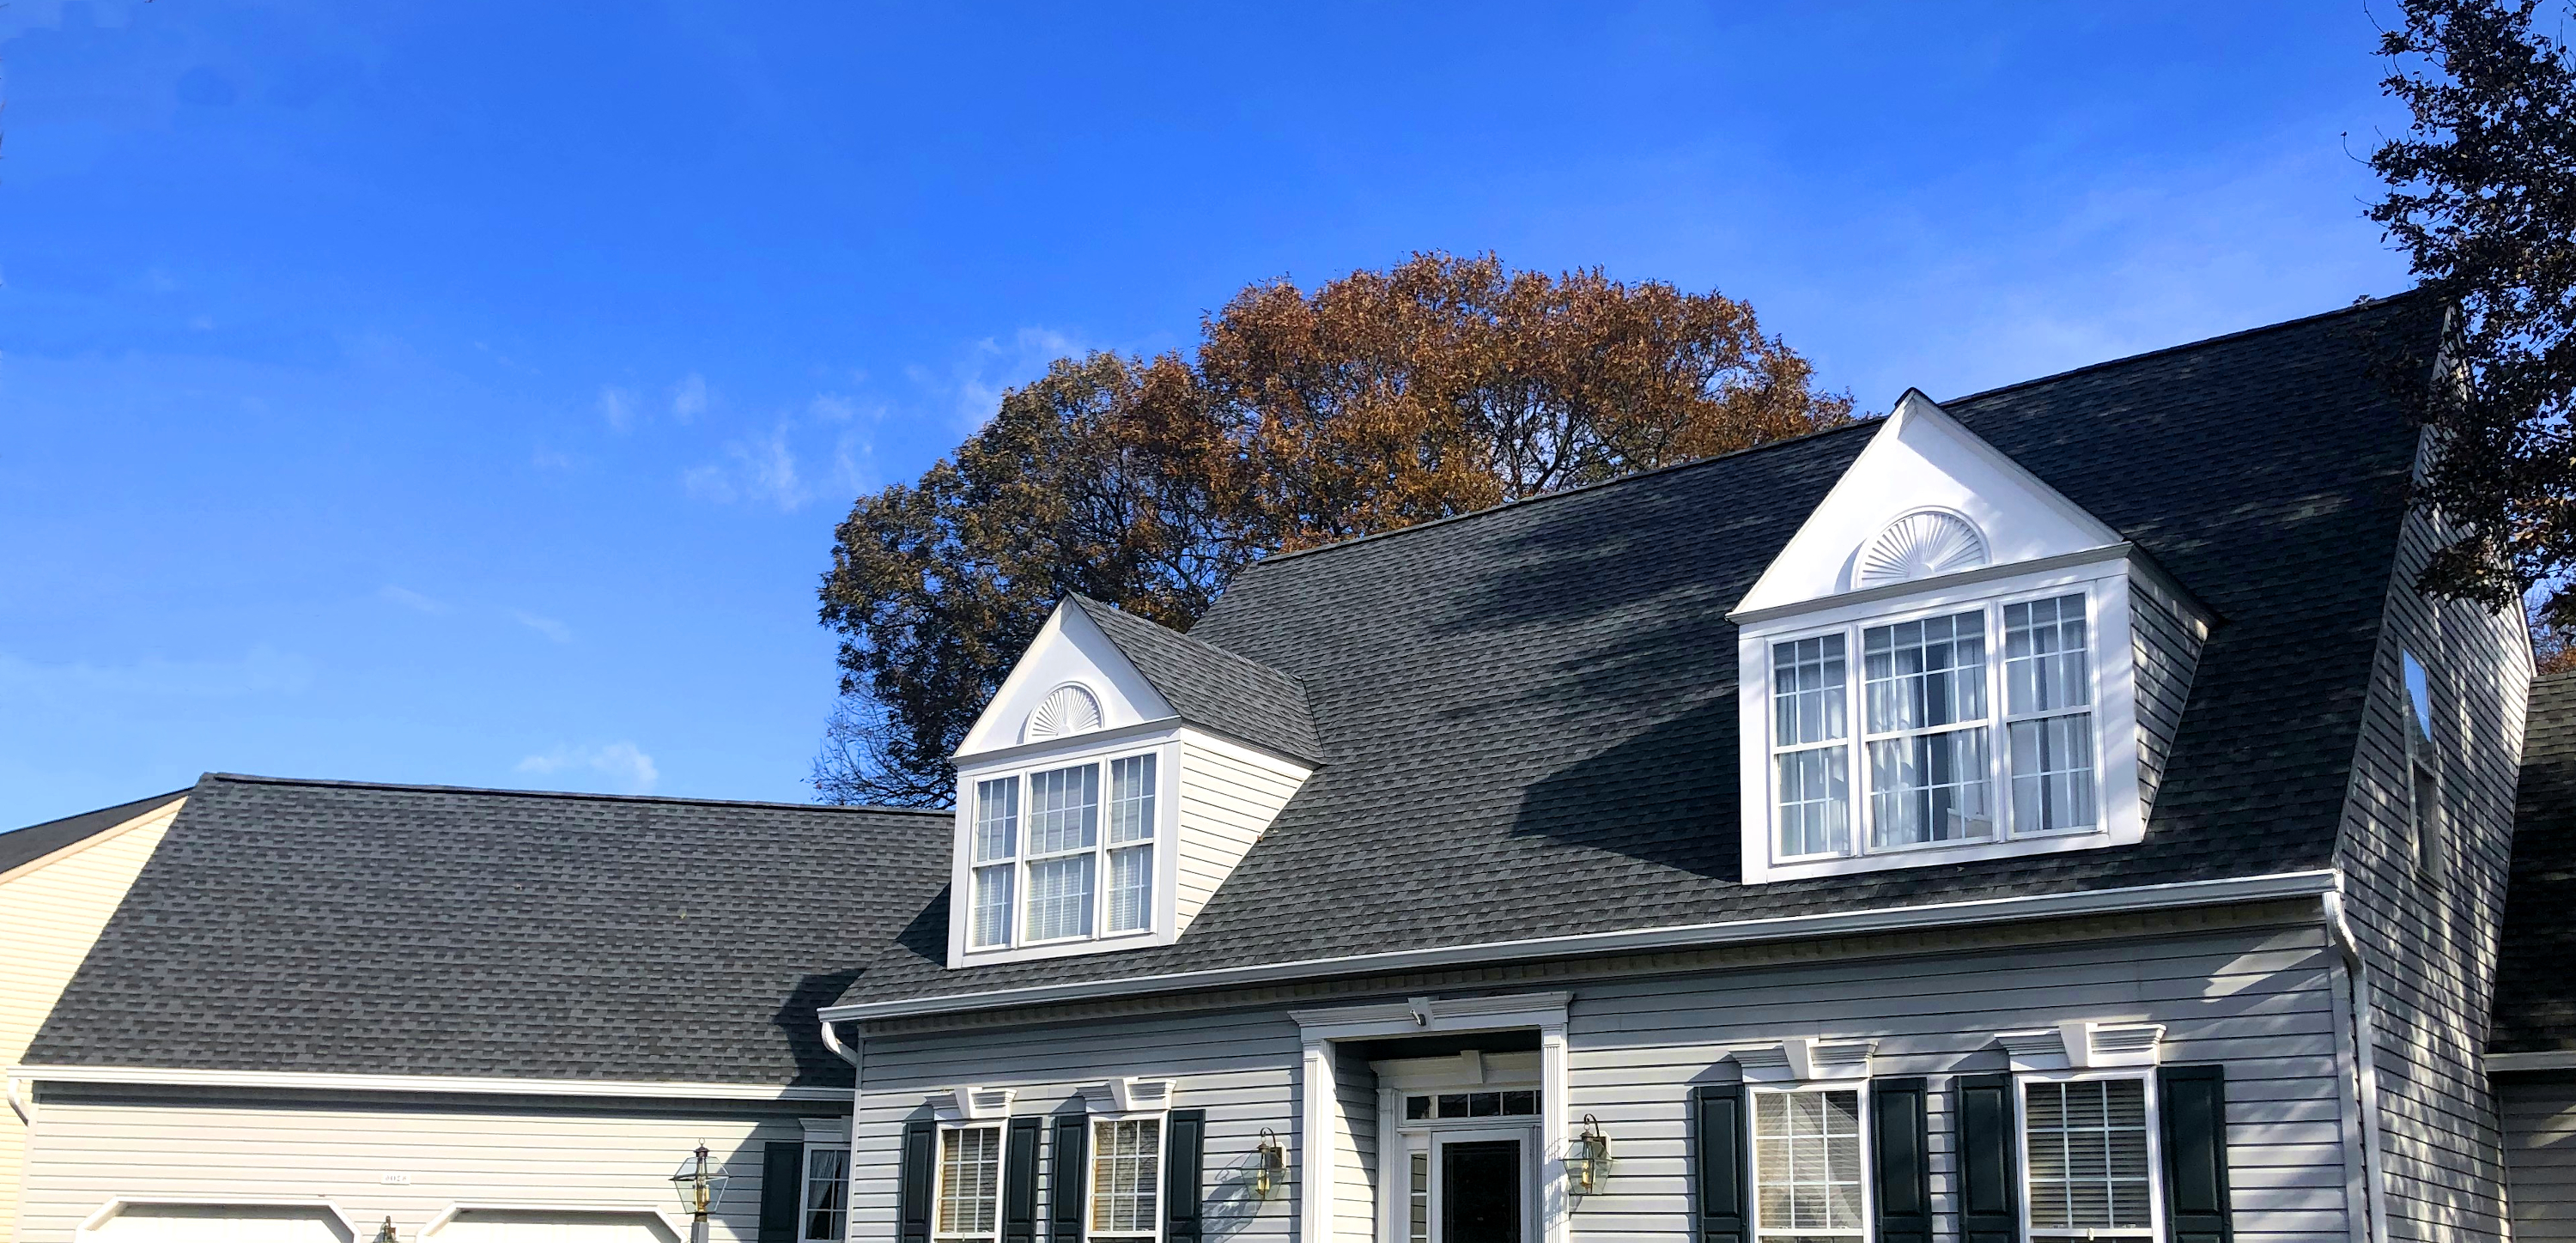 Roofing in Linthicum, MD 21090